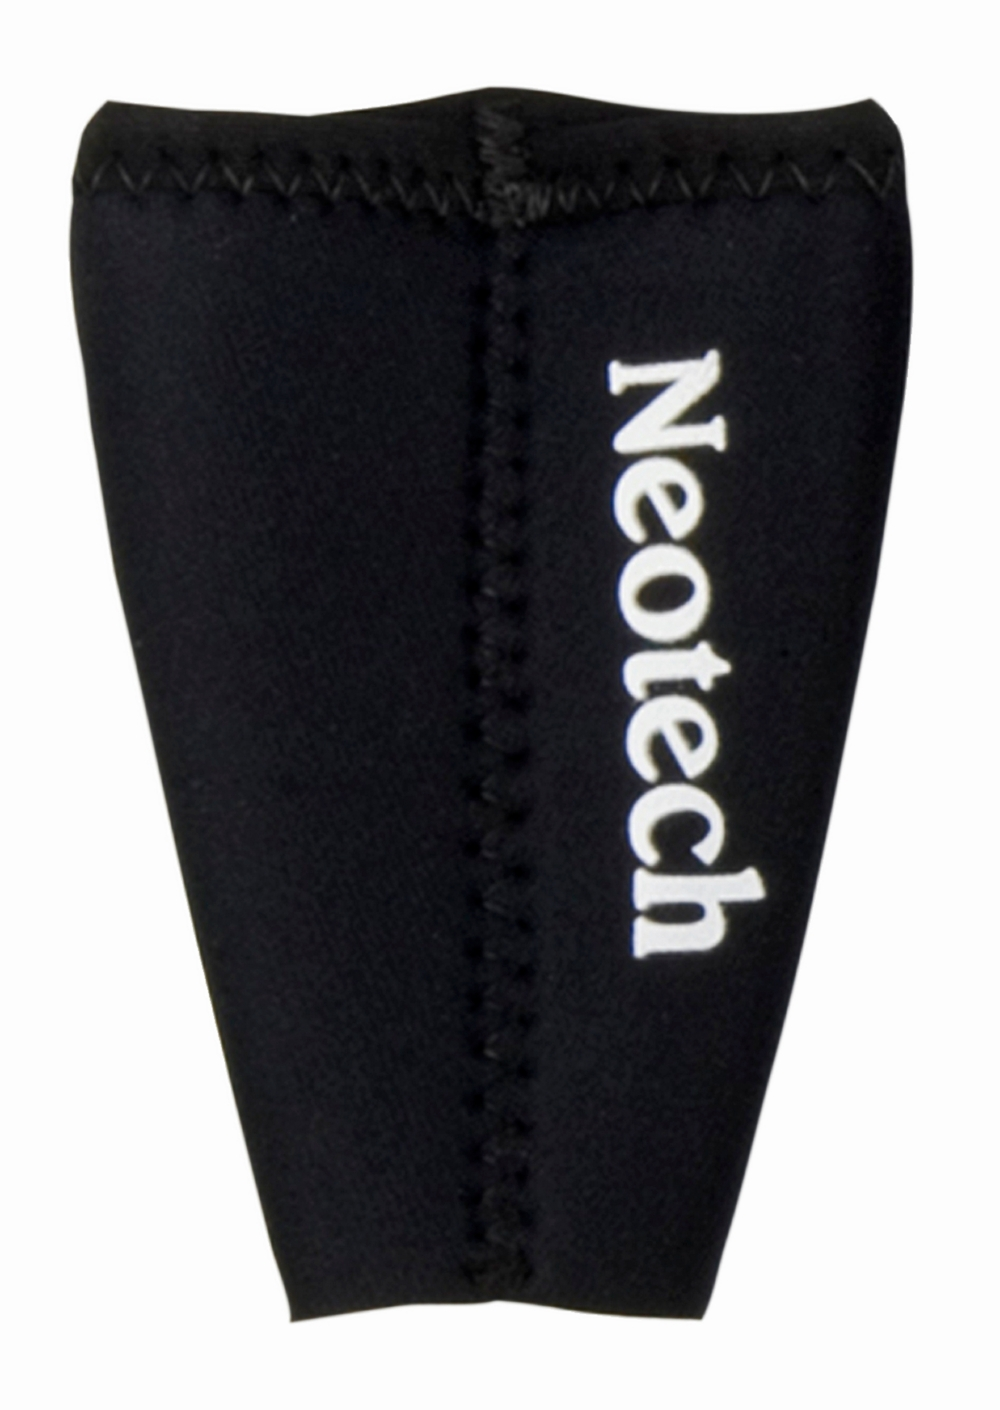 Neotech Small Pucker Pouch by Neotech